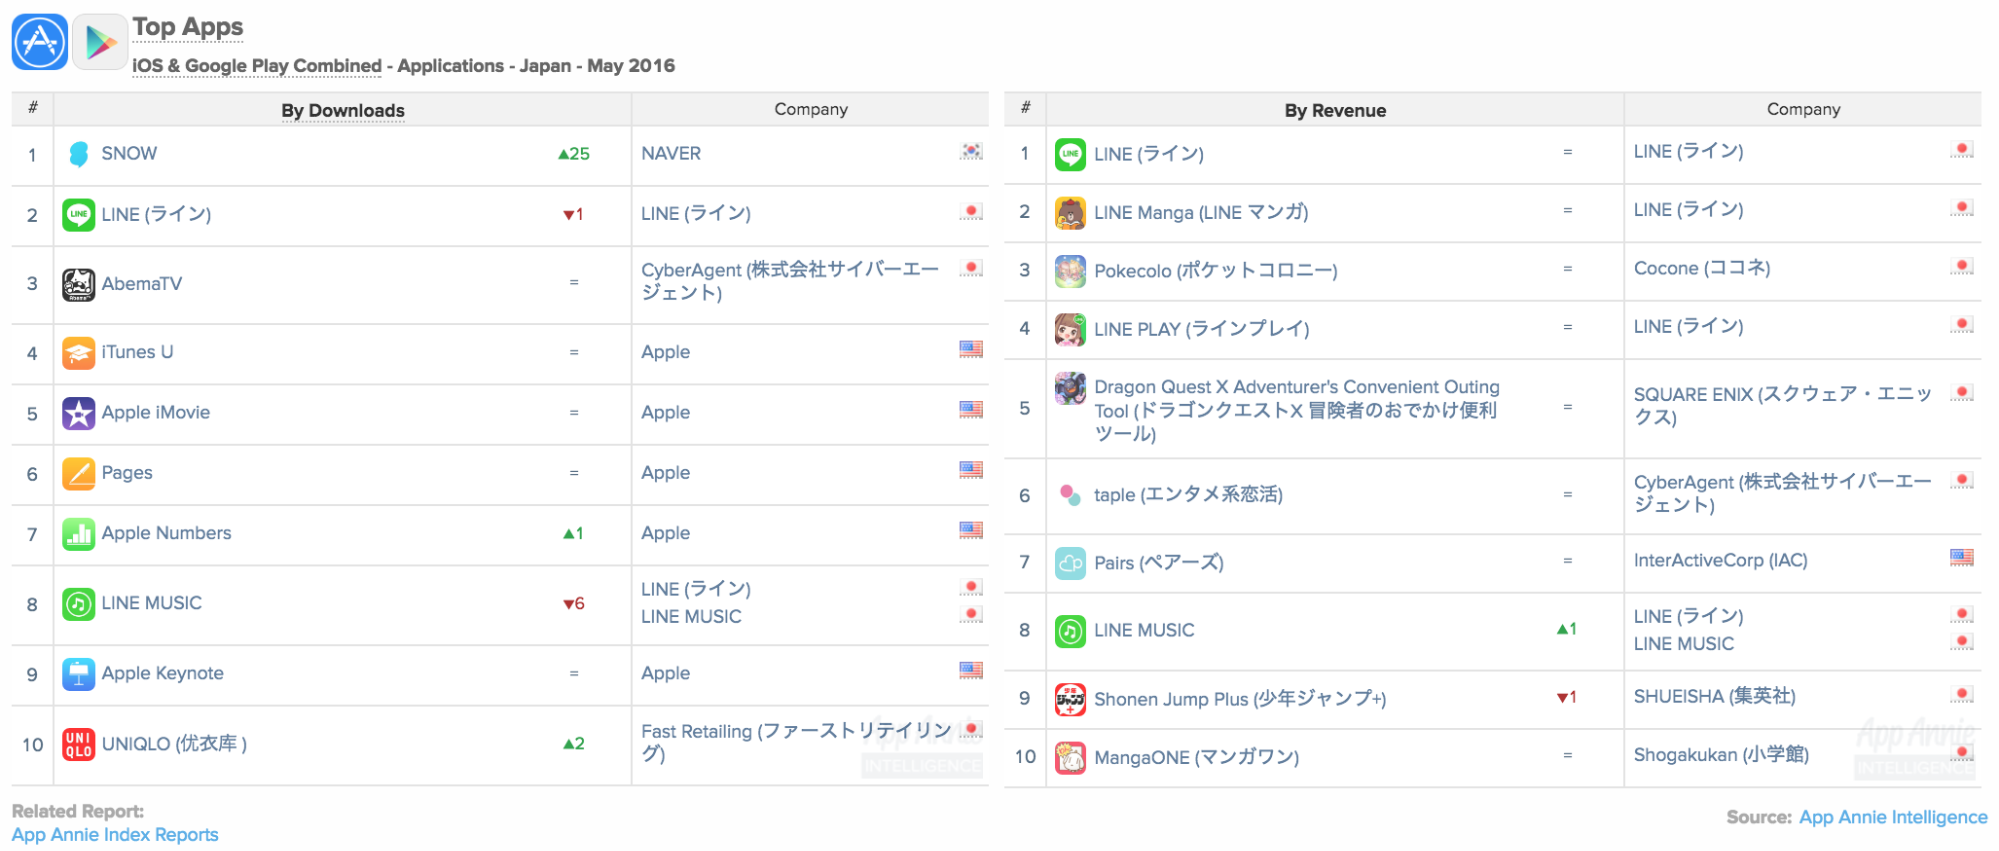 LINE Different Apps Top 10 Revenue Japan May 2016